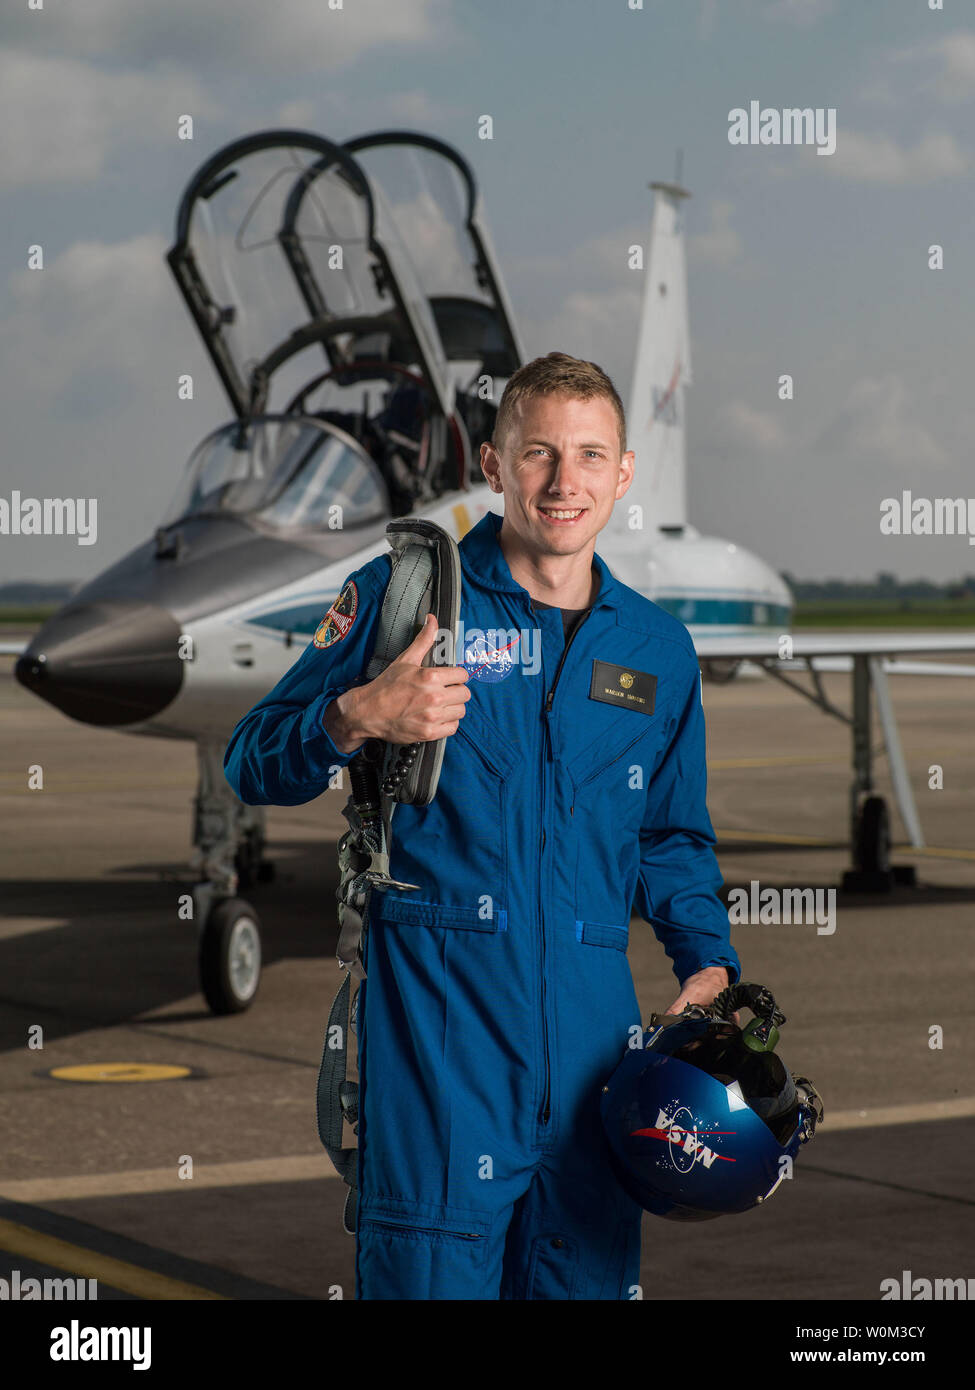 Warren 'Woody' Hoburg has been selected by NASA to join the 2017 Astronaut Candidate Class. He will report for duty in August 2017. The Pennsylvania native earned a Bachelor's degree in Aeronautics and Astronautics from the Massachusetts Institute of Technology (MIT) and a Doctorate in Electrical Engineering and Computer Science from the University of California, Berkeley. NASA Photo by Robert Markowitz/UPI - Stock Image